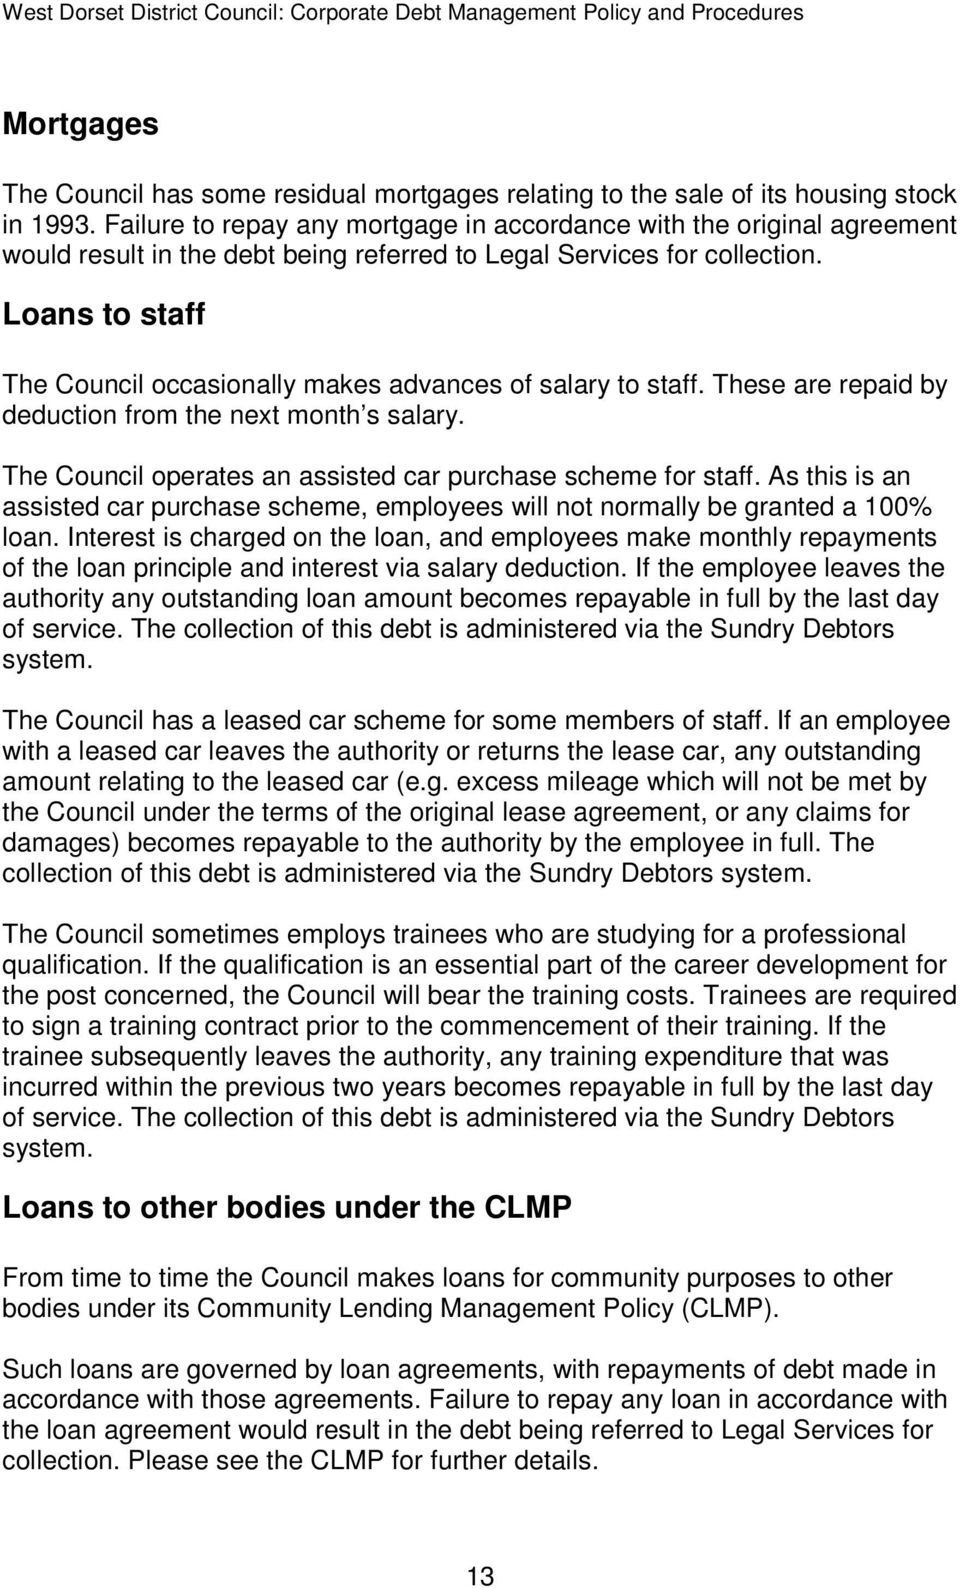 Loans to staff The Council occasionally makes advances of salary to staff. These are repaid by deduction from the next month s salary. The Council operates an assisted car purchase scheme for staff.